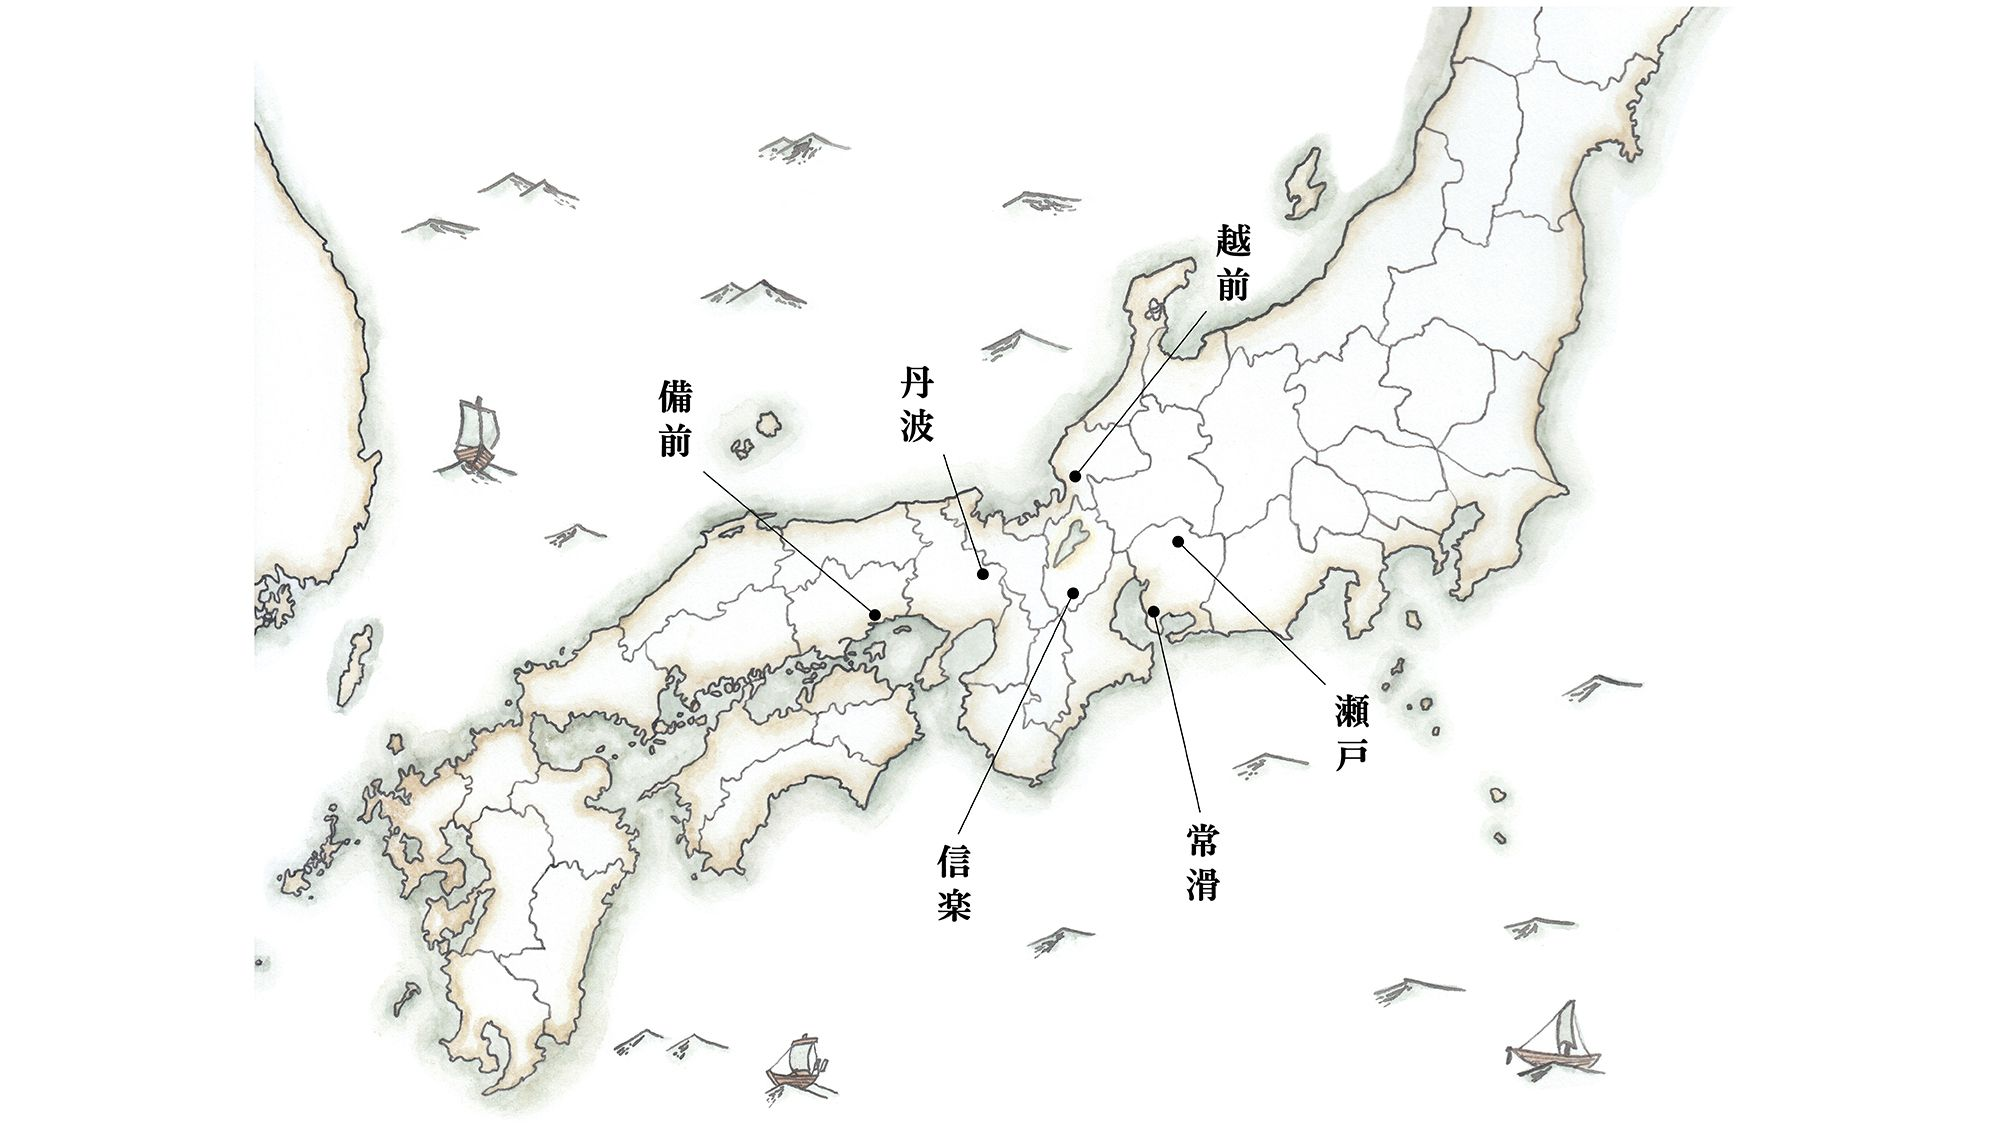 The Rokkoyo situated in Japan. It is known that more than 80 production areas used to have existed during the middle ages.